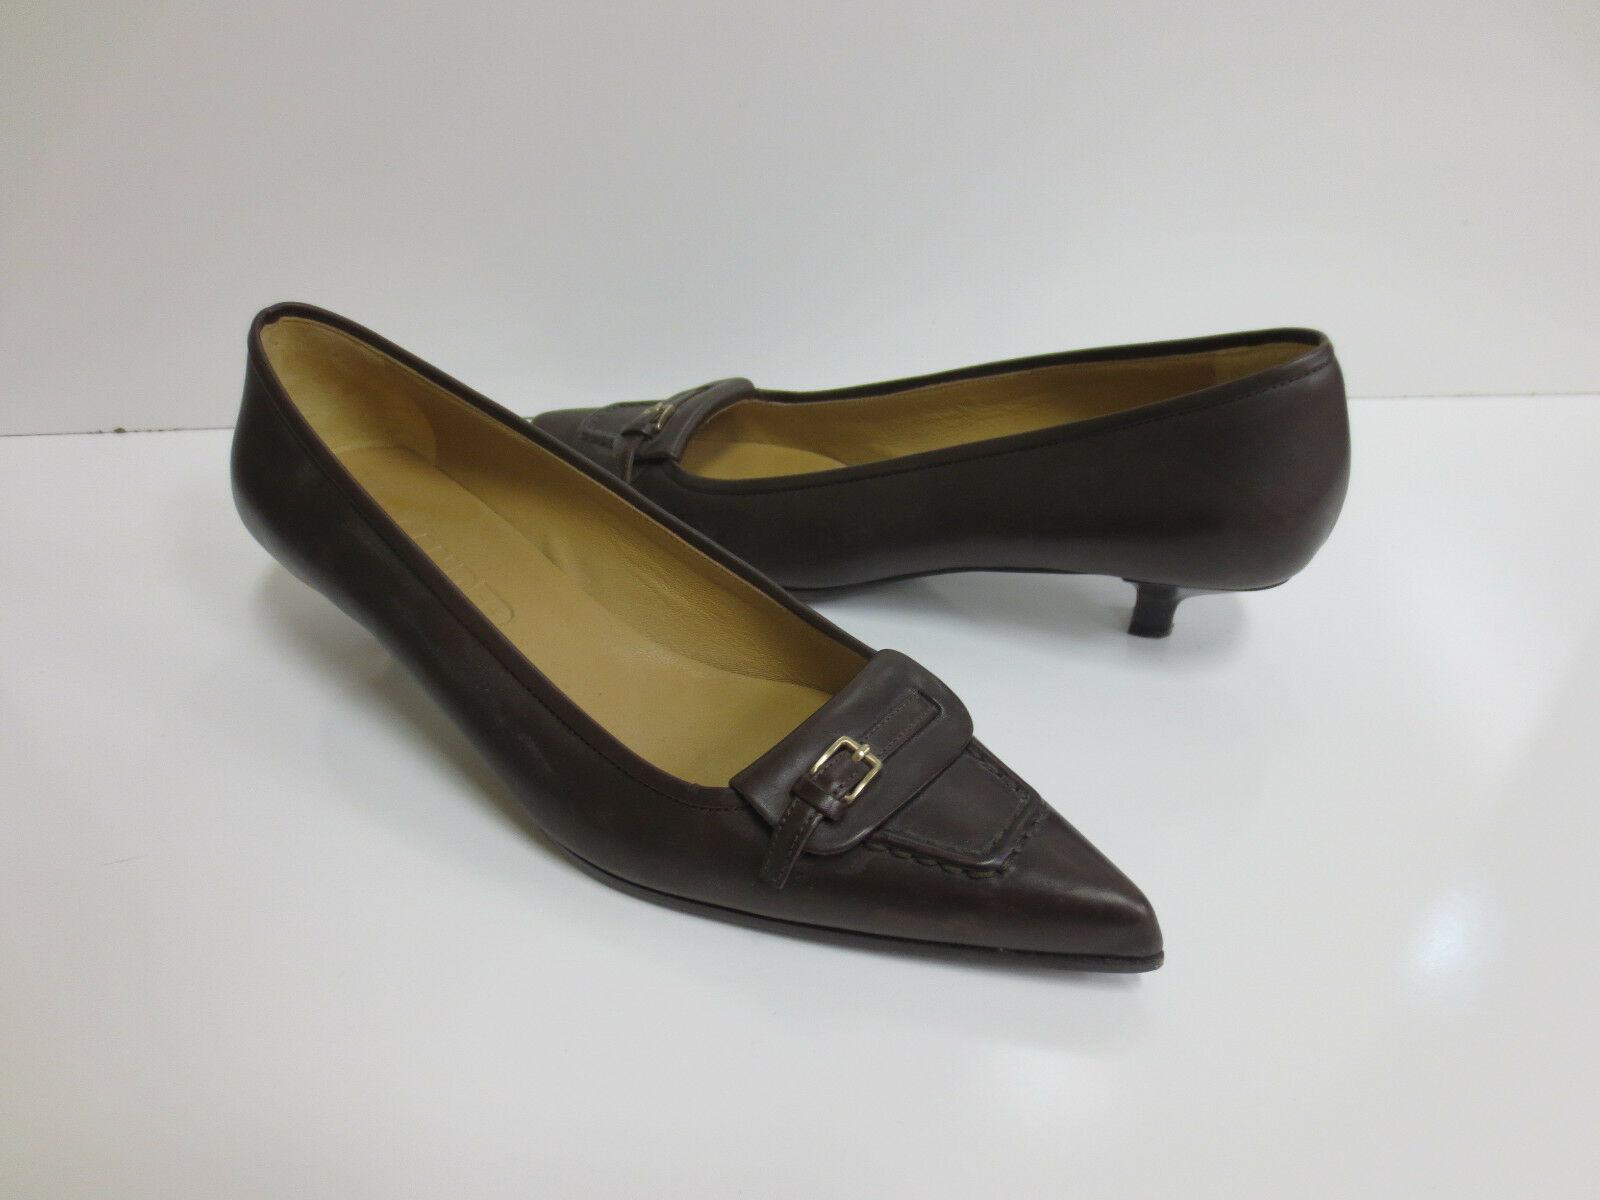 JIL SANDER Braun Leder Buckle Strap Pumps Schuhes 39 MINT CONDITION